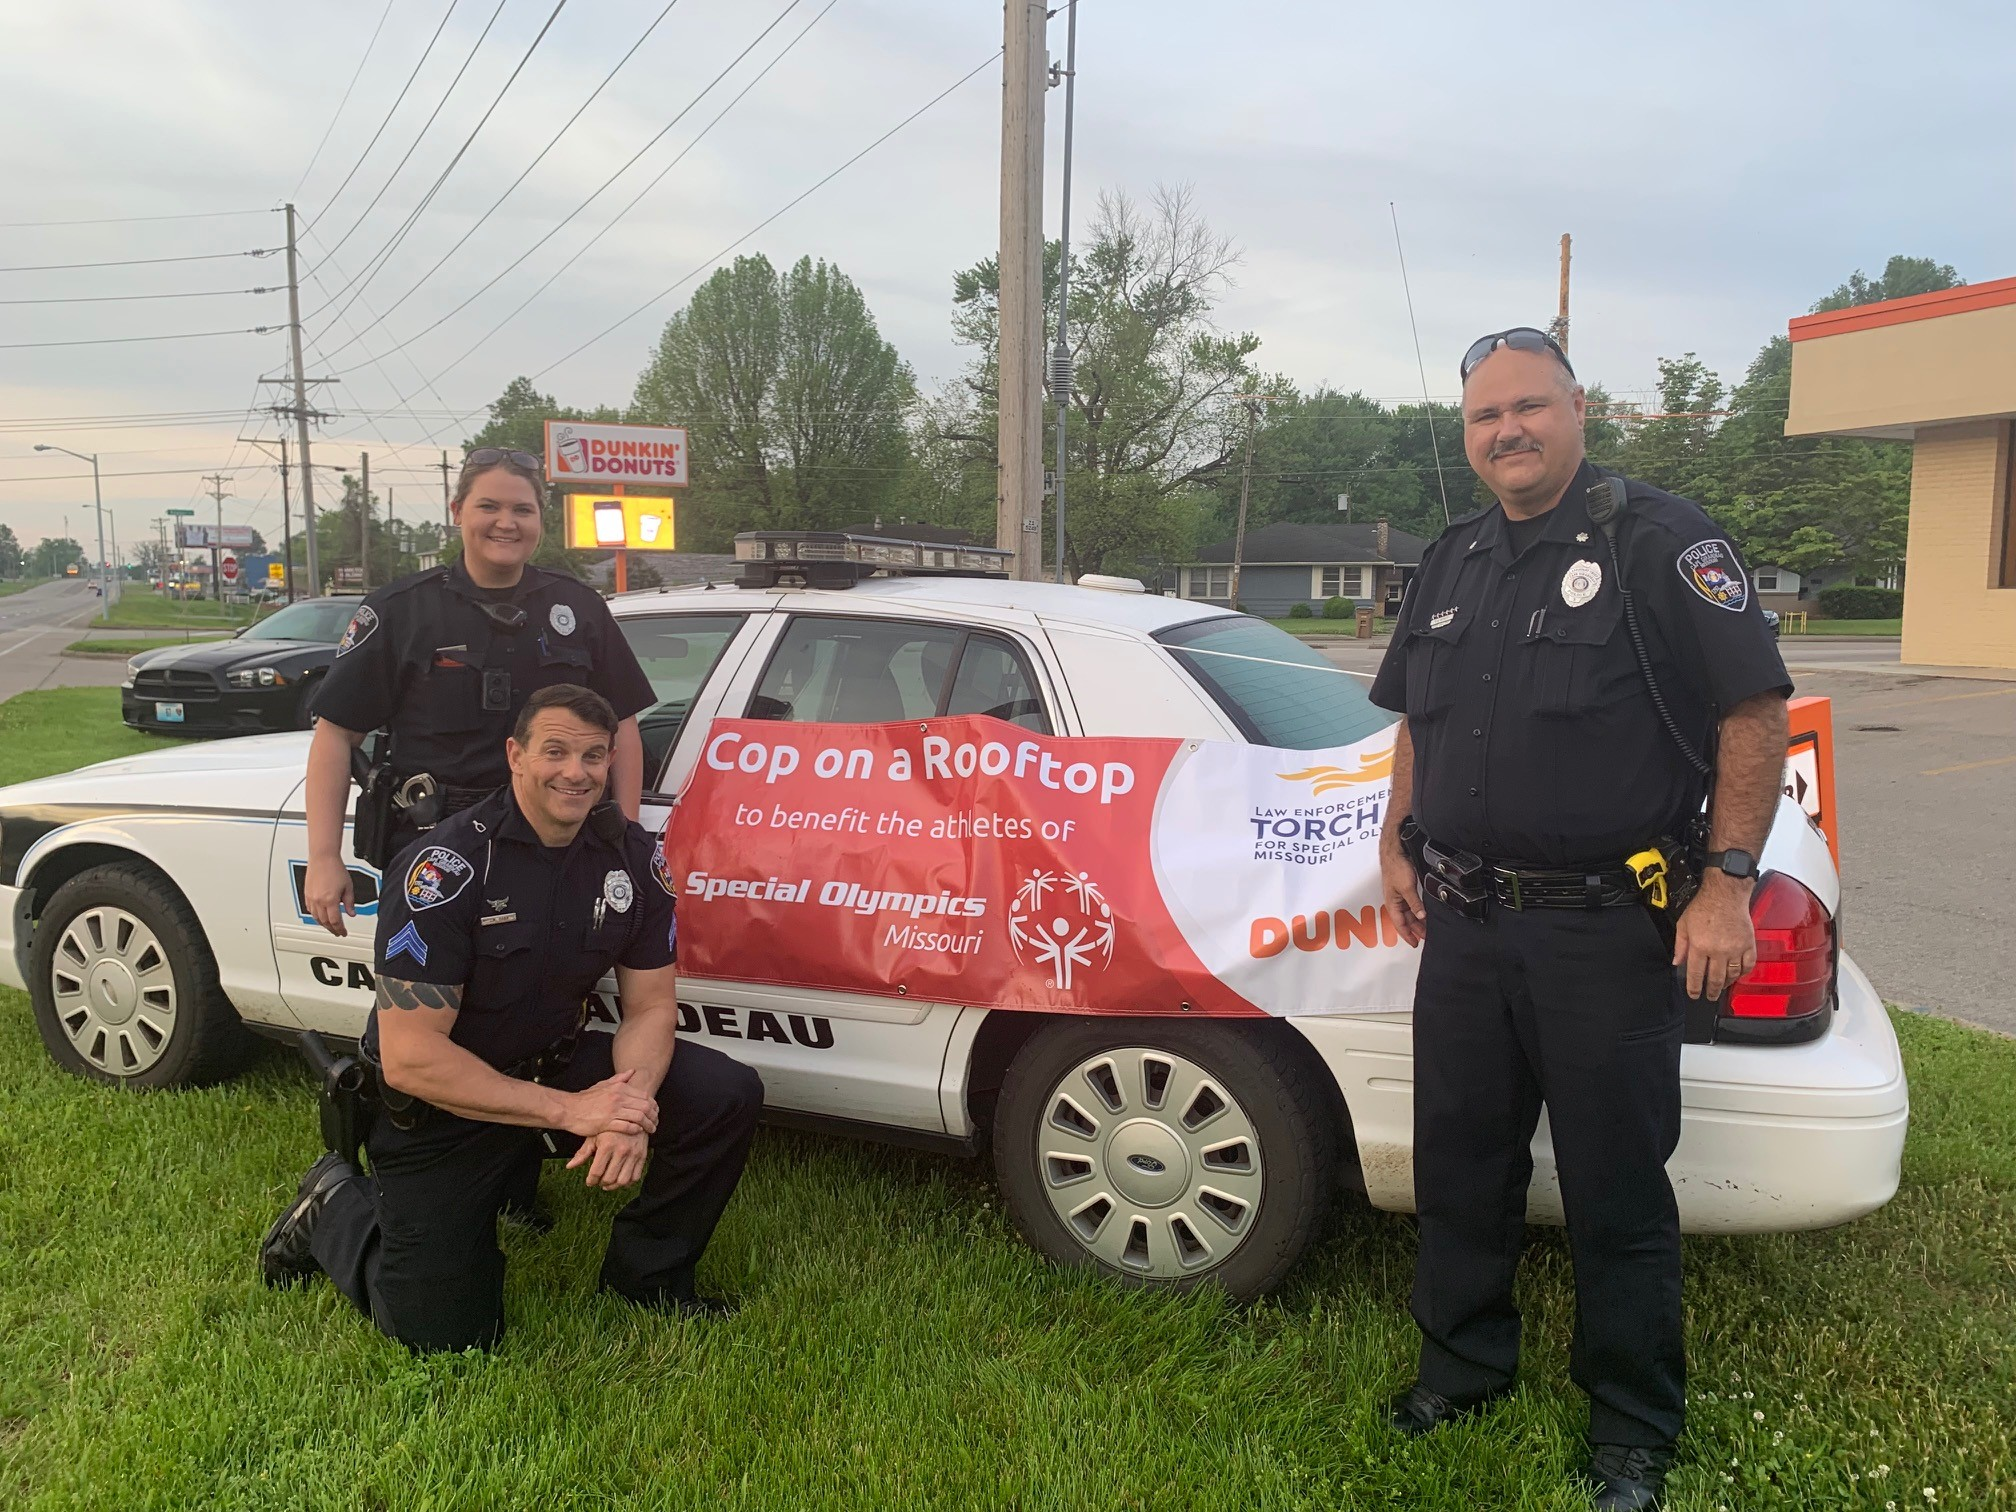 """Three law enforcement officers pose in front of a cop car with a """"Cop on a Rooftop"""" banner"""